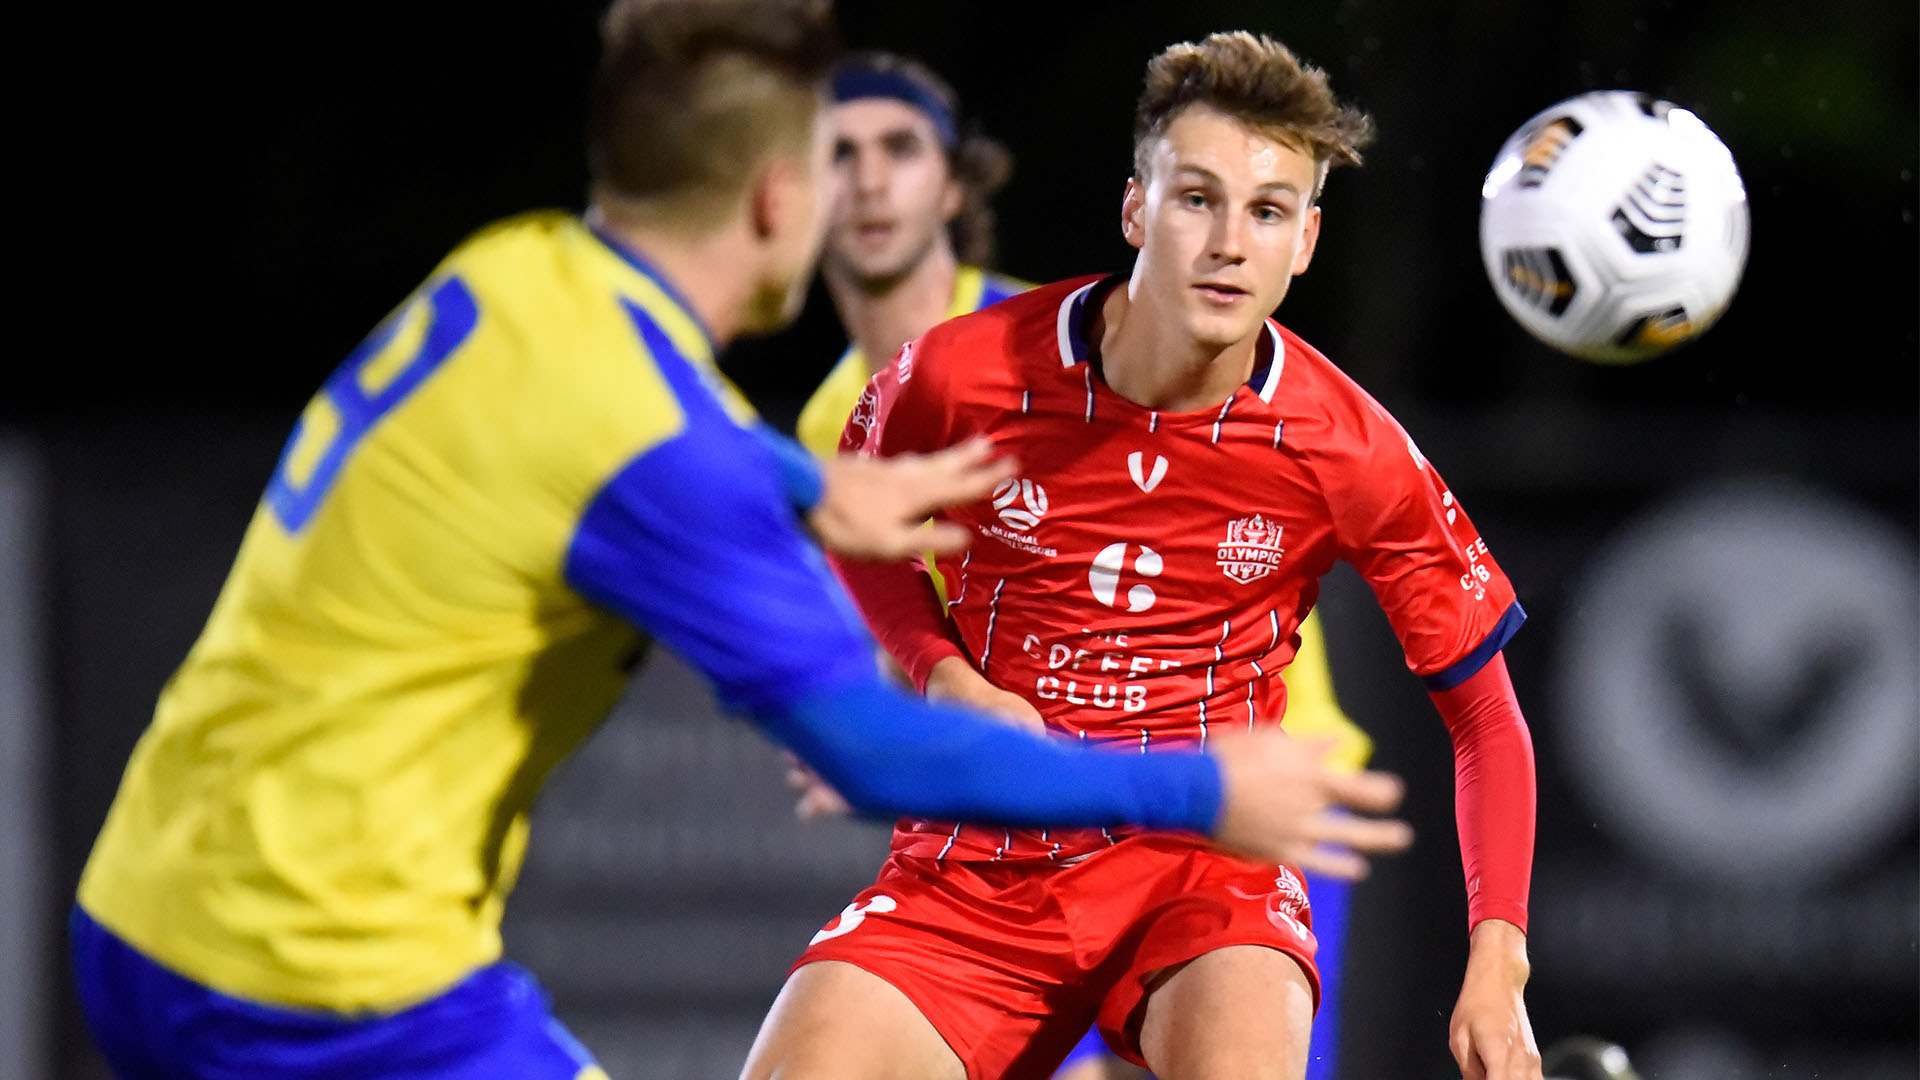 Match Preview: Brisbane Strikers vs Olympic FC